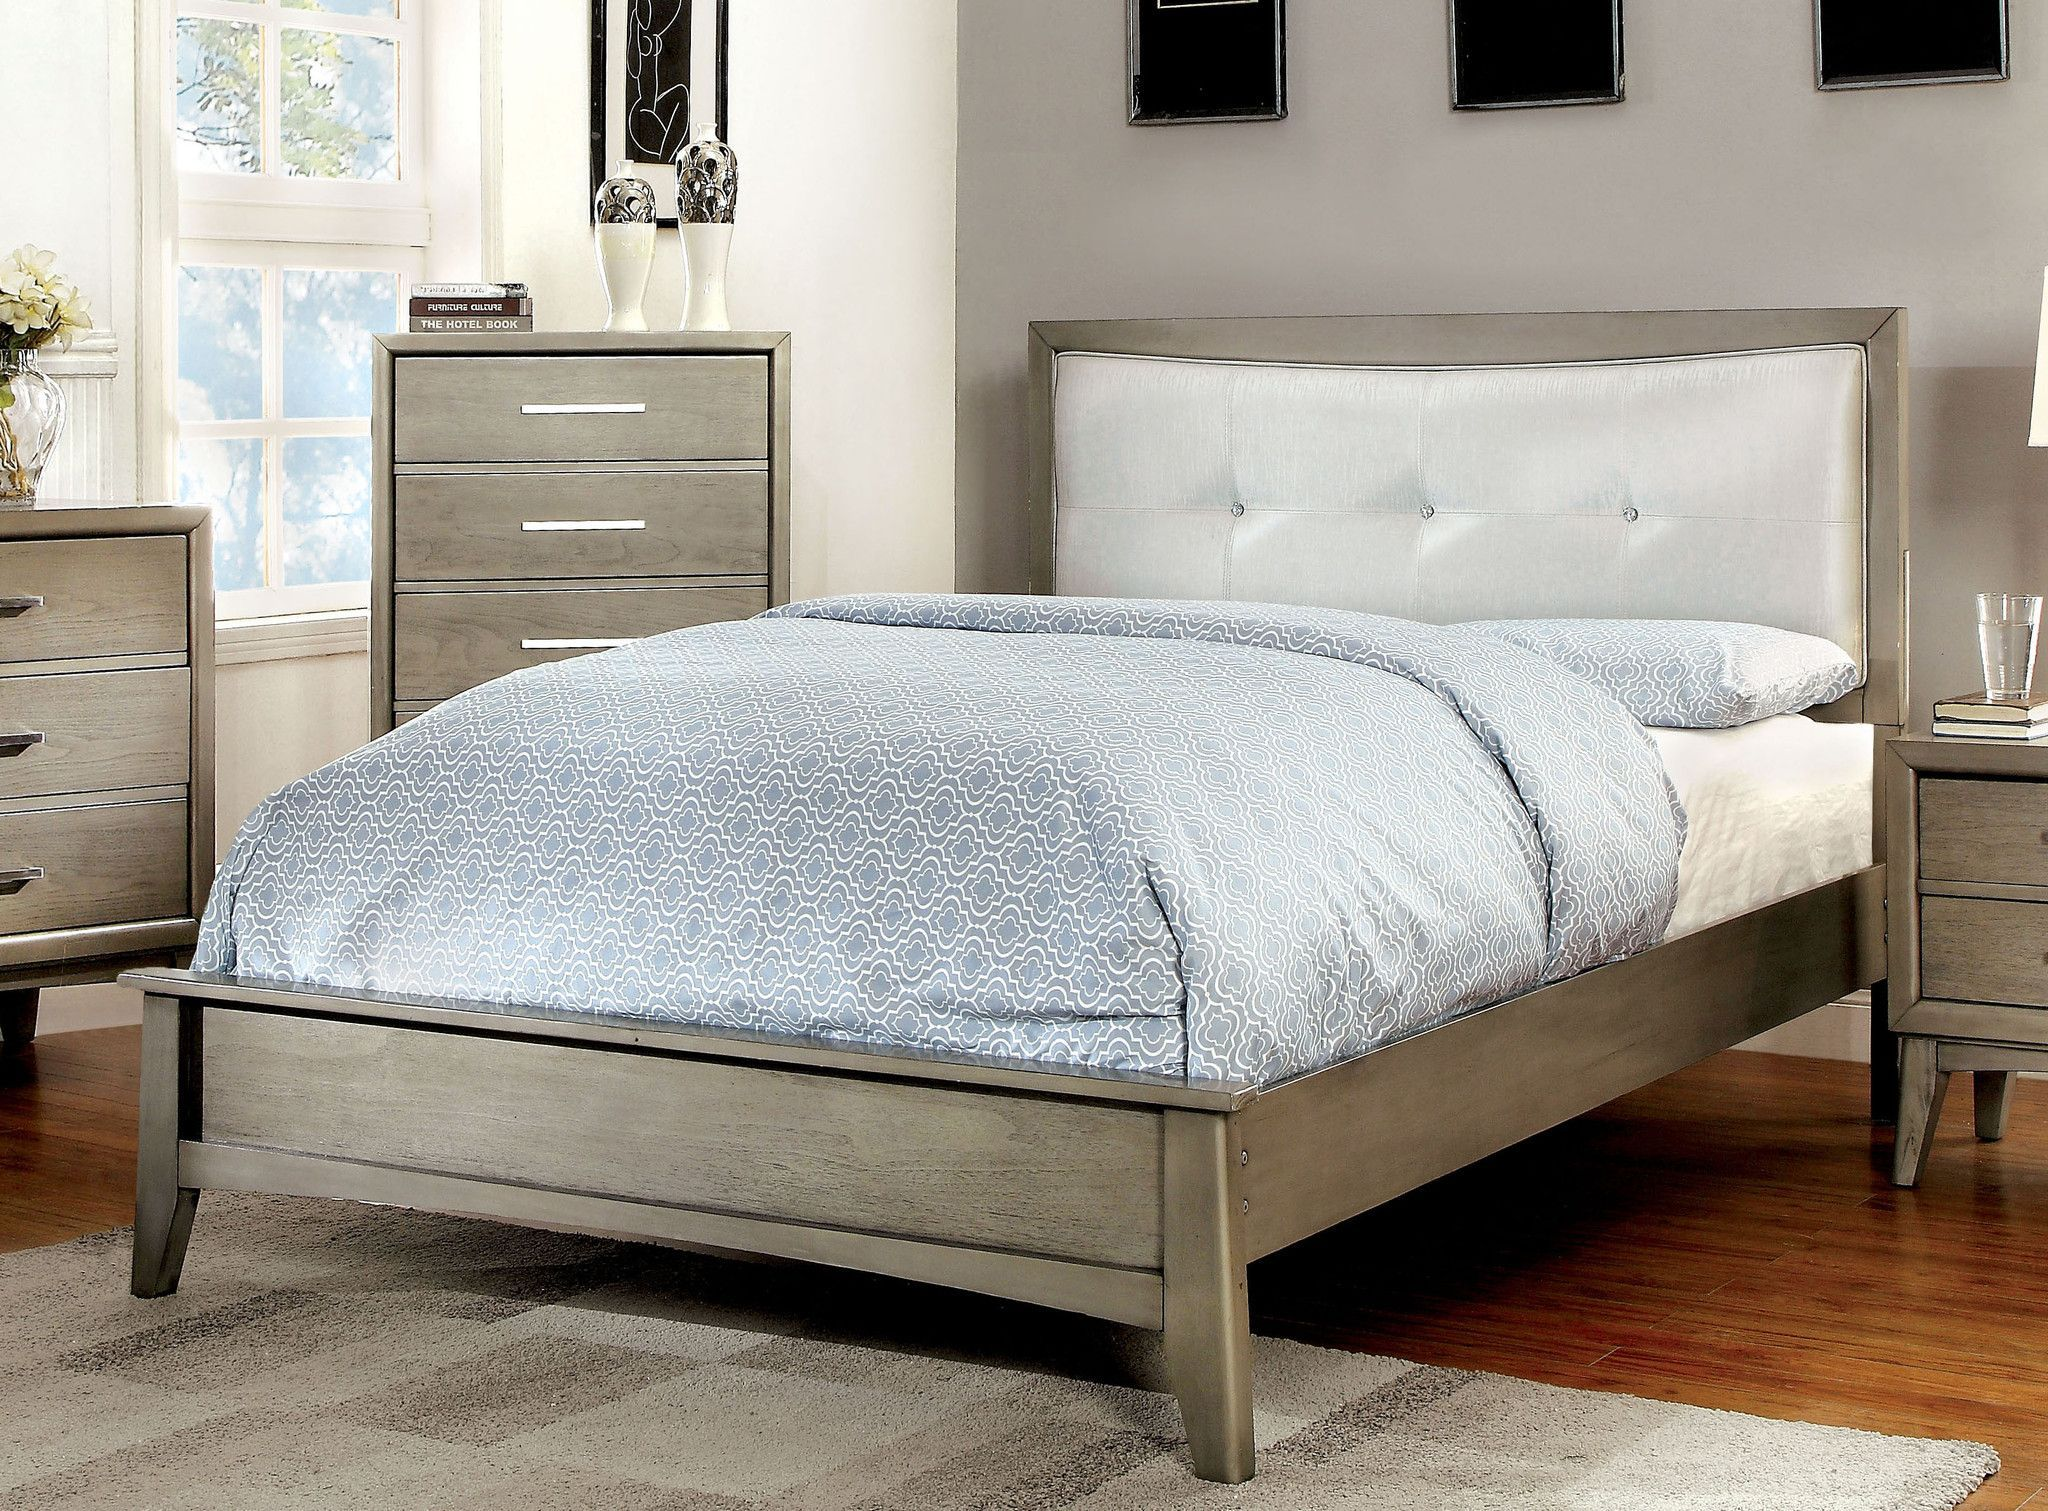 Yarber Contemporary Tufted Leatherette Full Bed in Grey